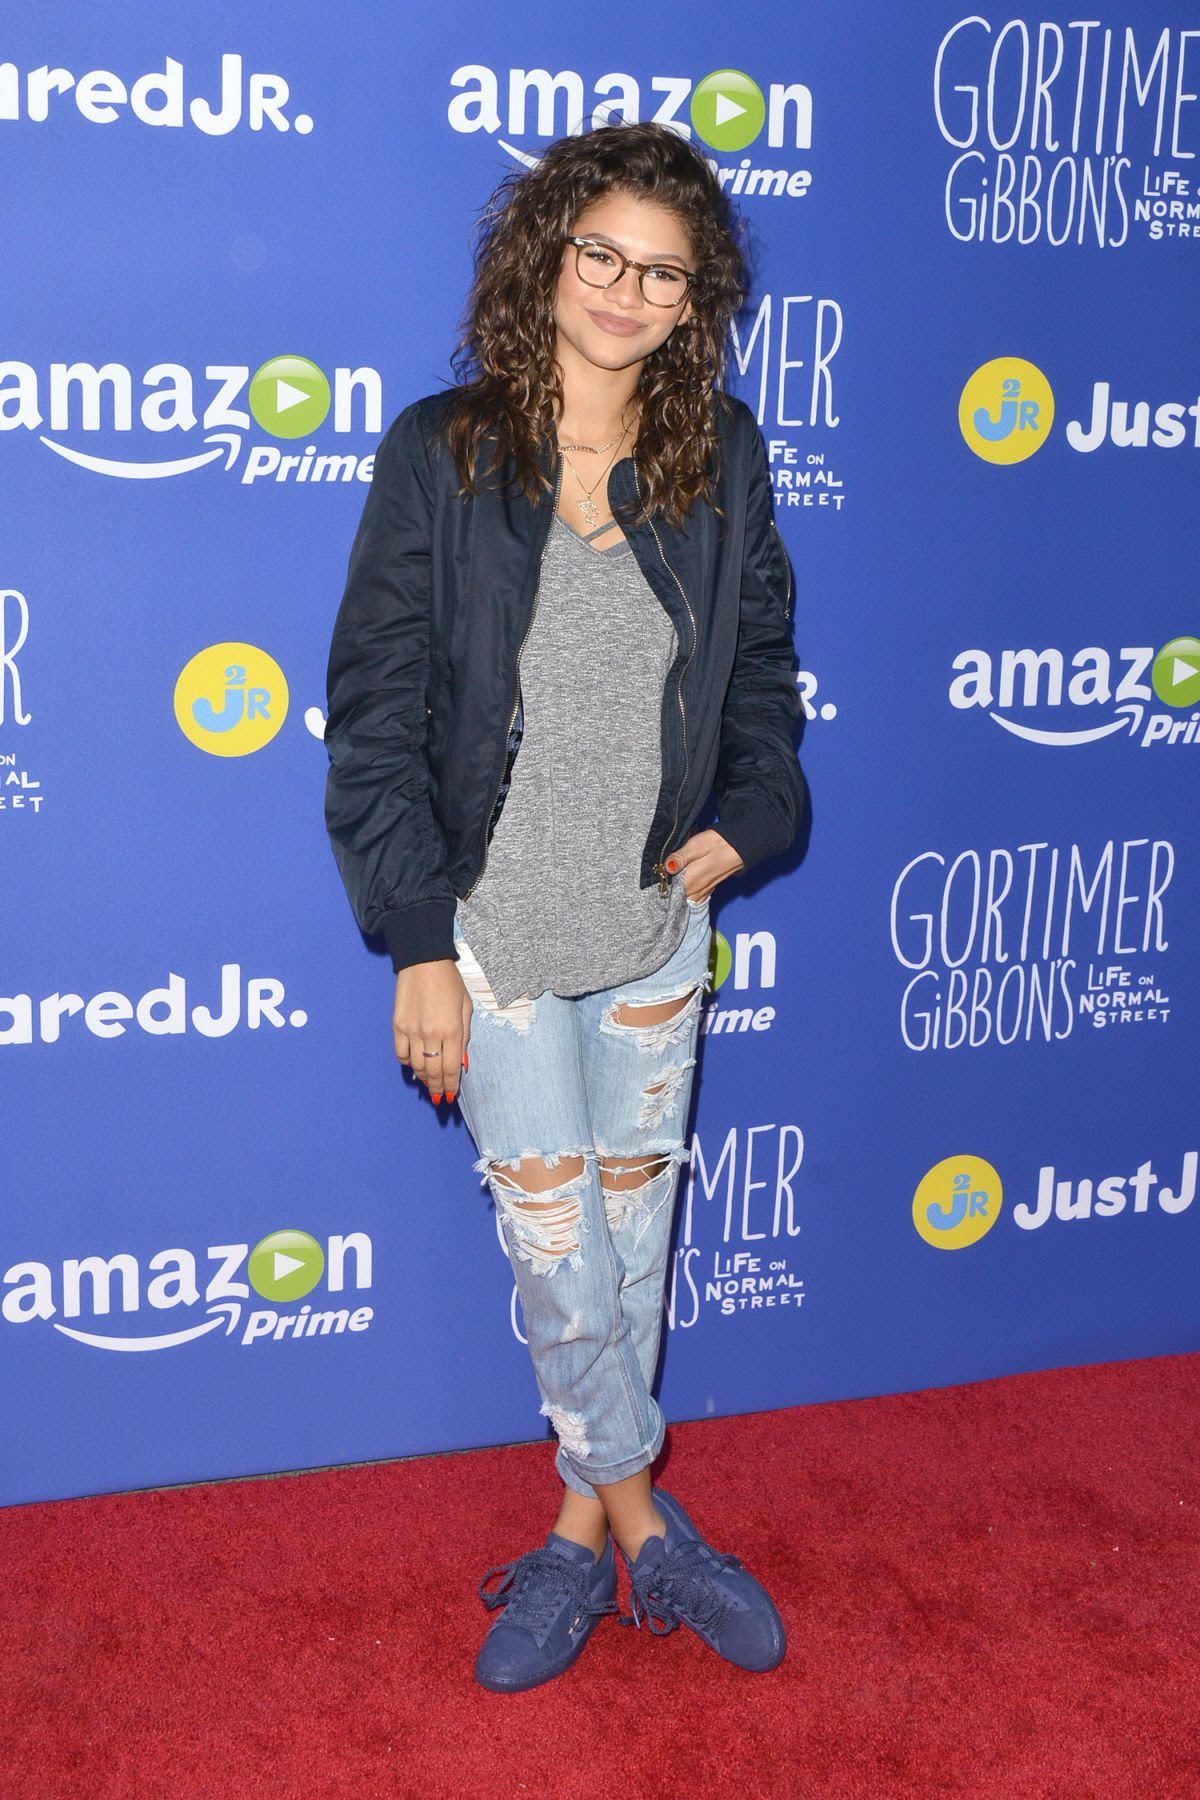 ZENDAYA COLEMAN at Just Jared Fall Fun Day in Los Angeles 10/24/2015